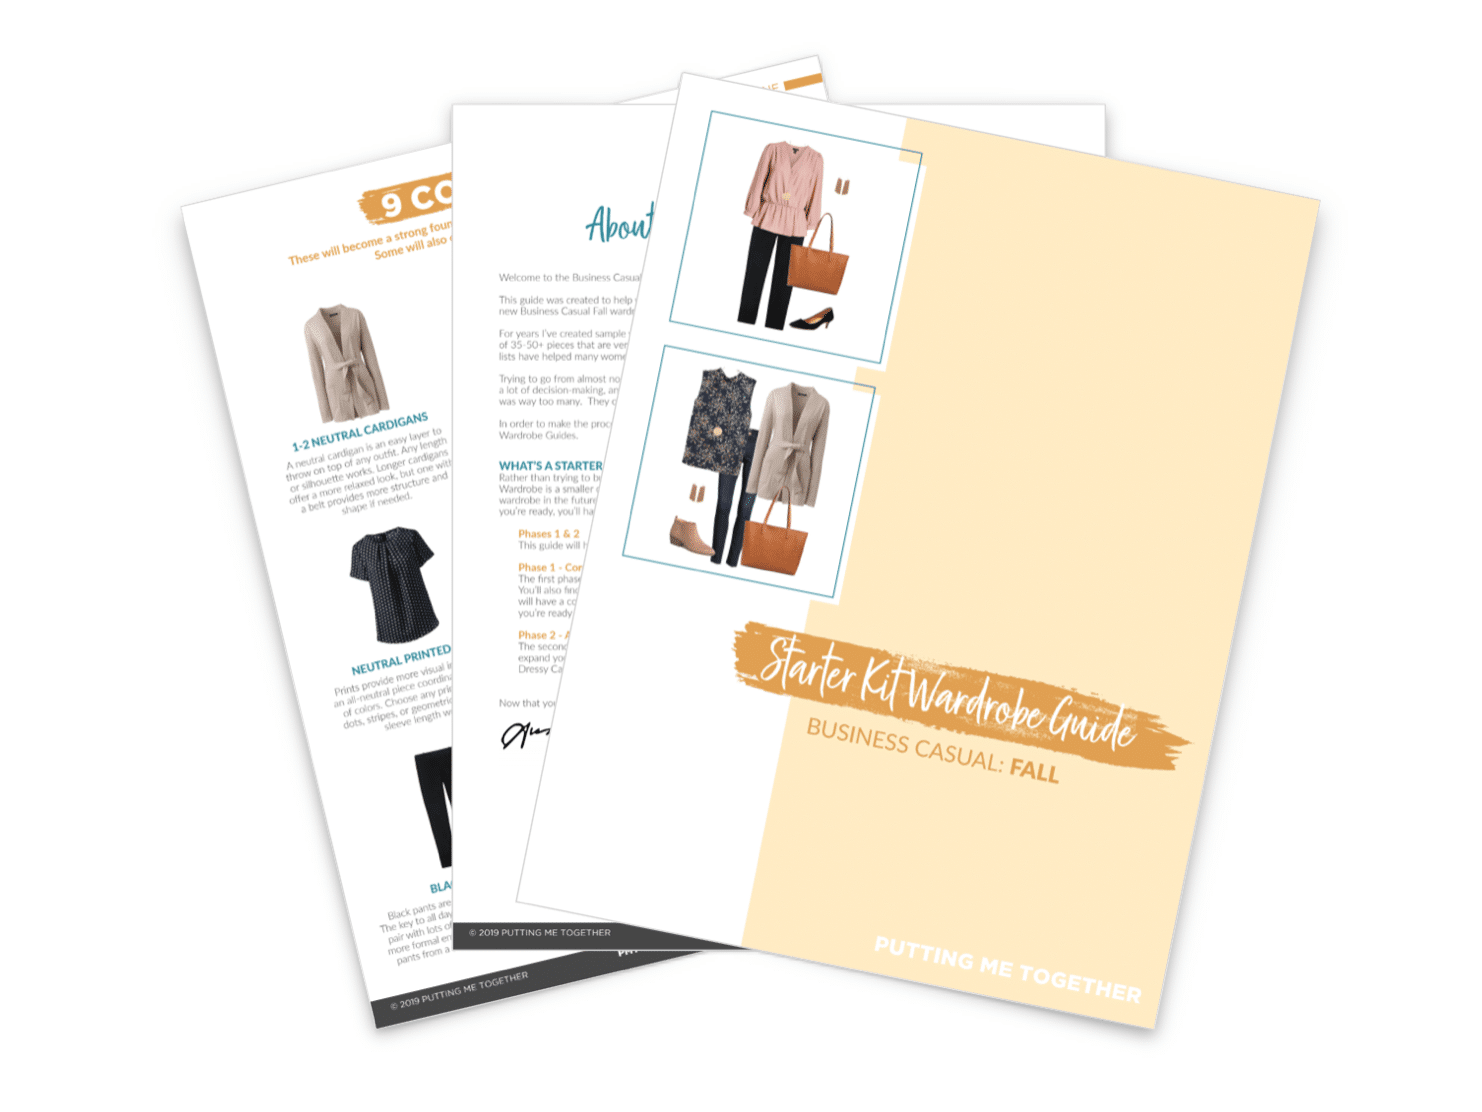 Fall Business Casual Starter Kit Wardrobe Guide Now Available!